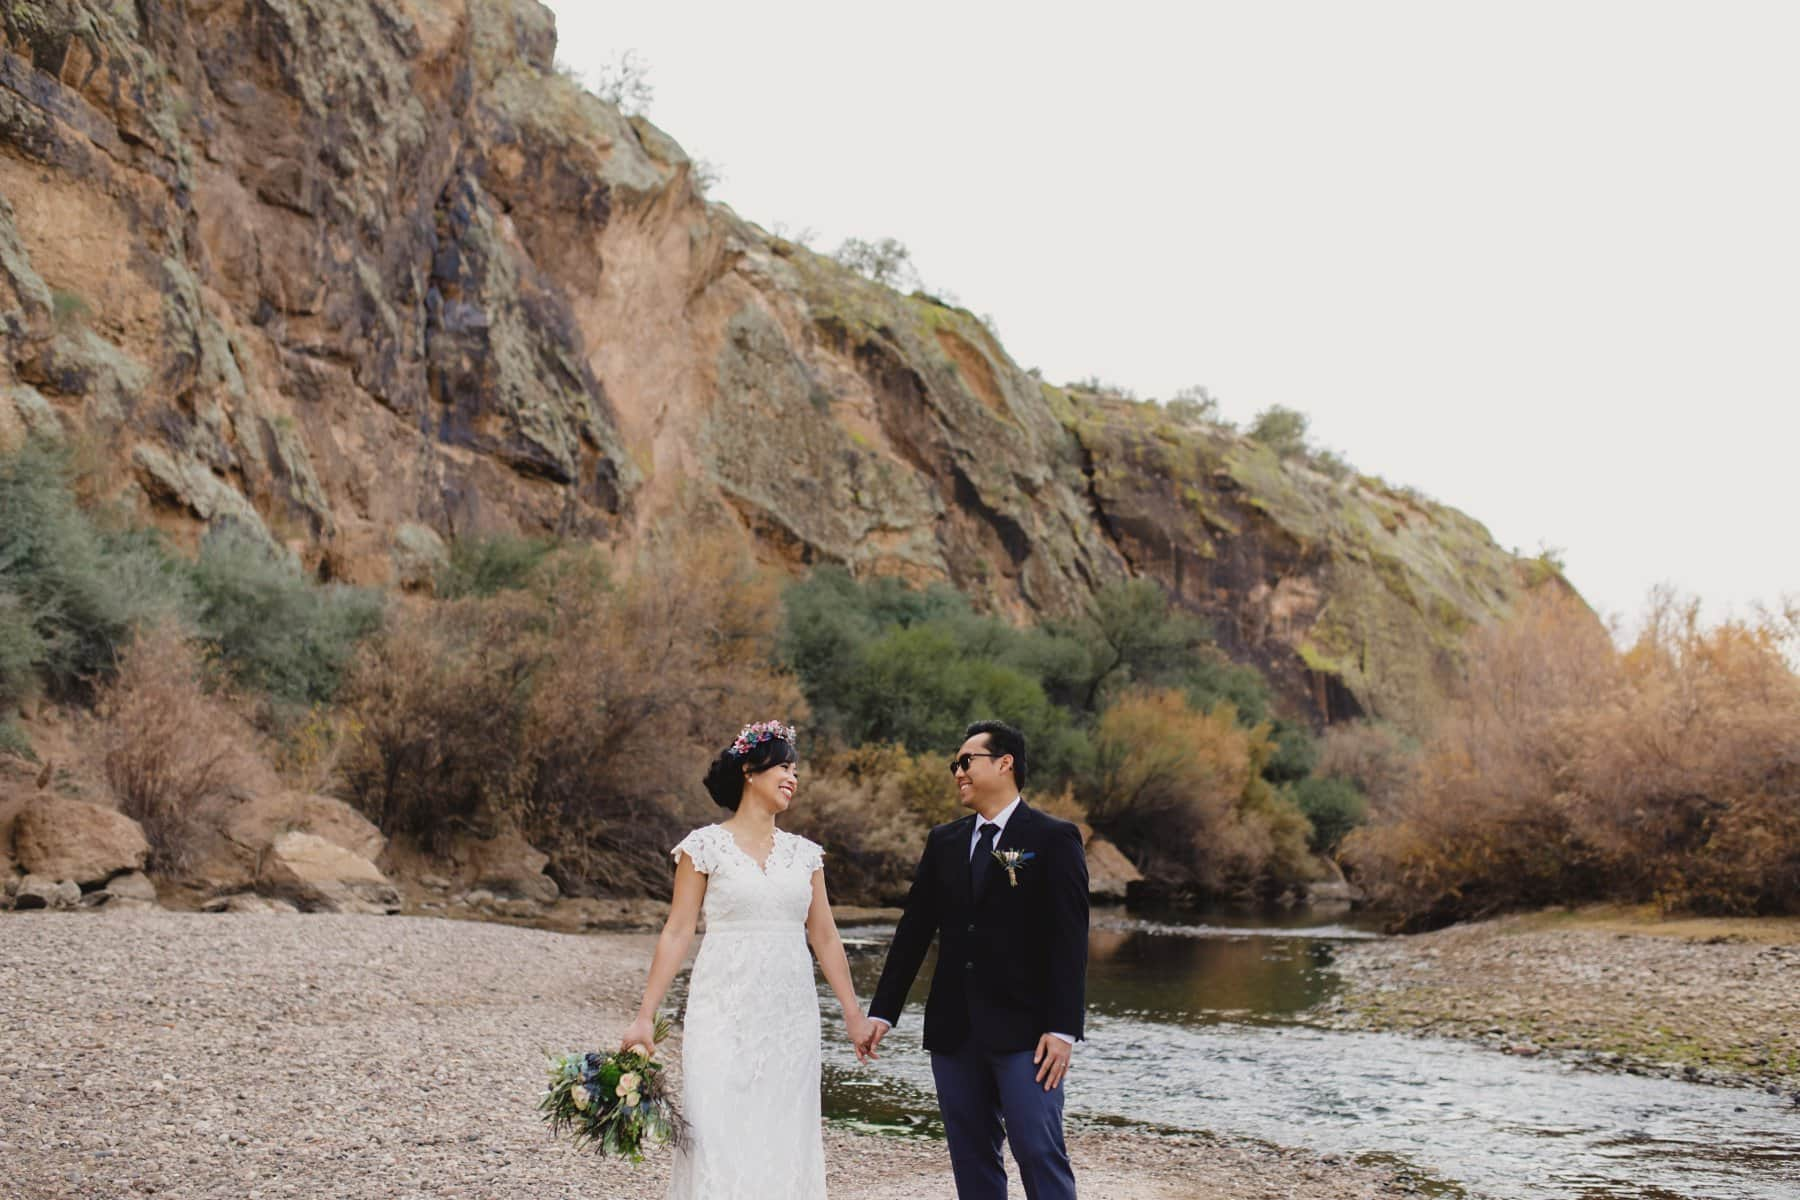 Salt River outdoor wedding locations for small weddings in Arizona